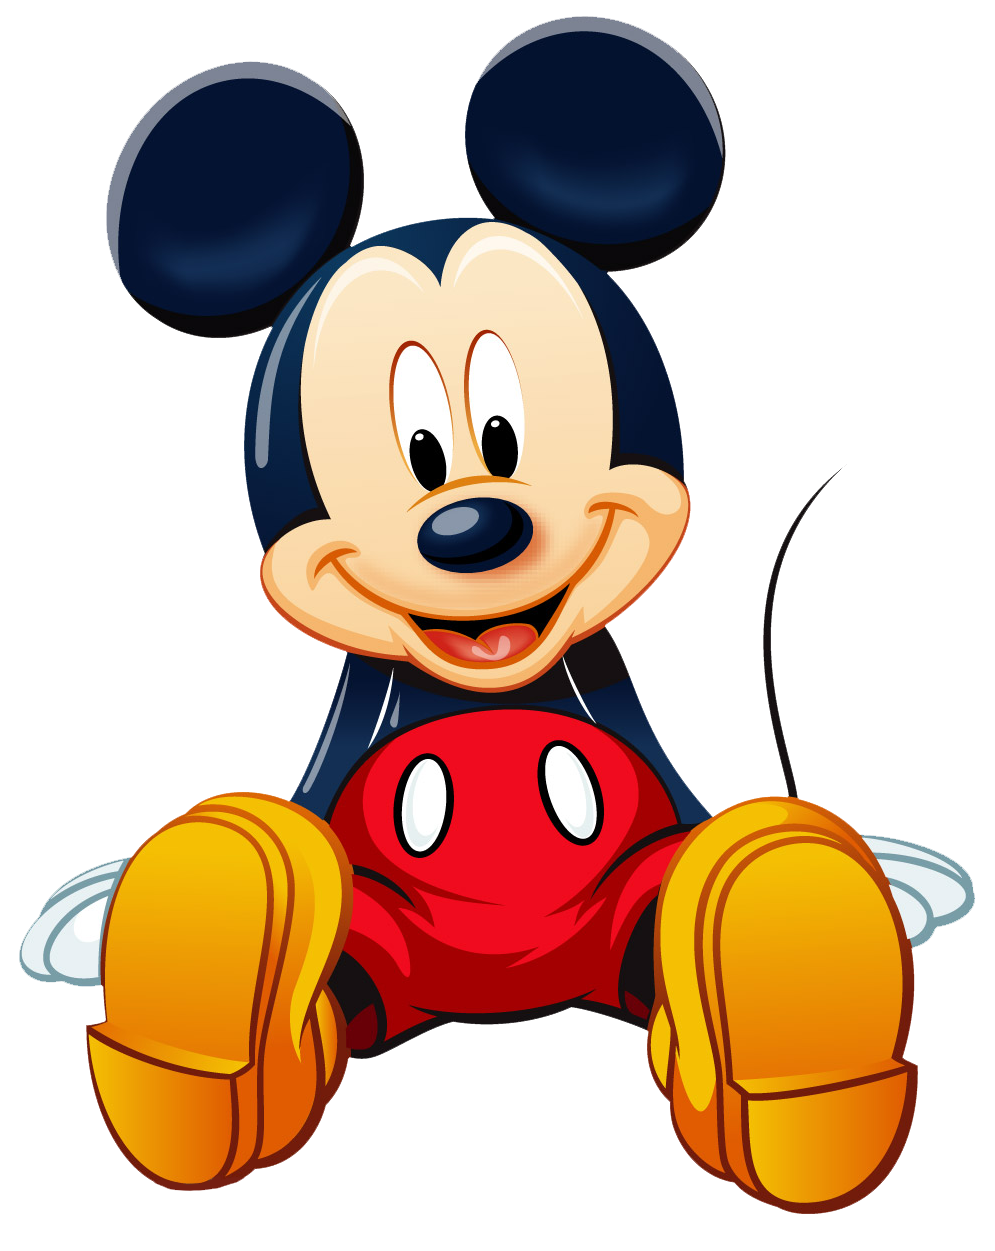 Mickey mouse characters png. Pinterest mice and minnie